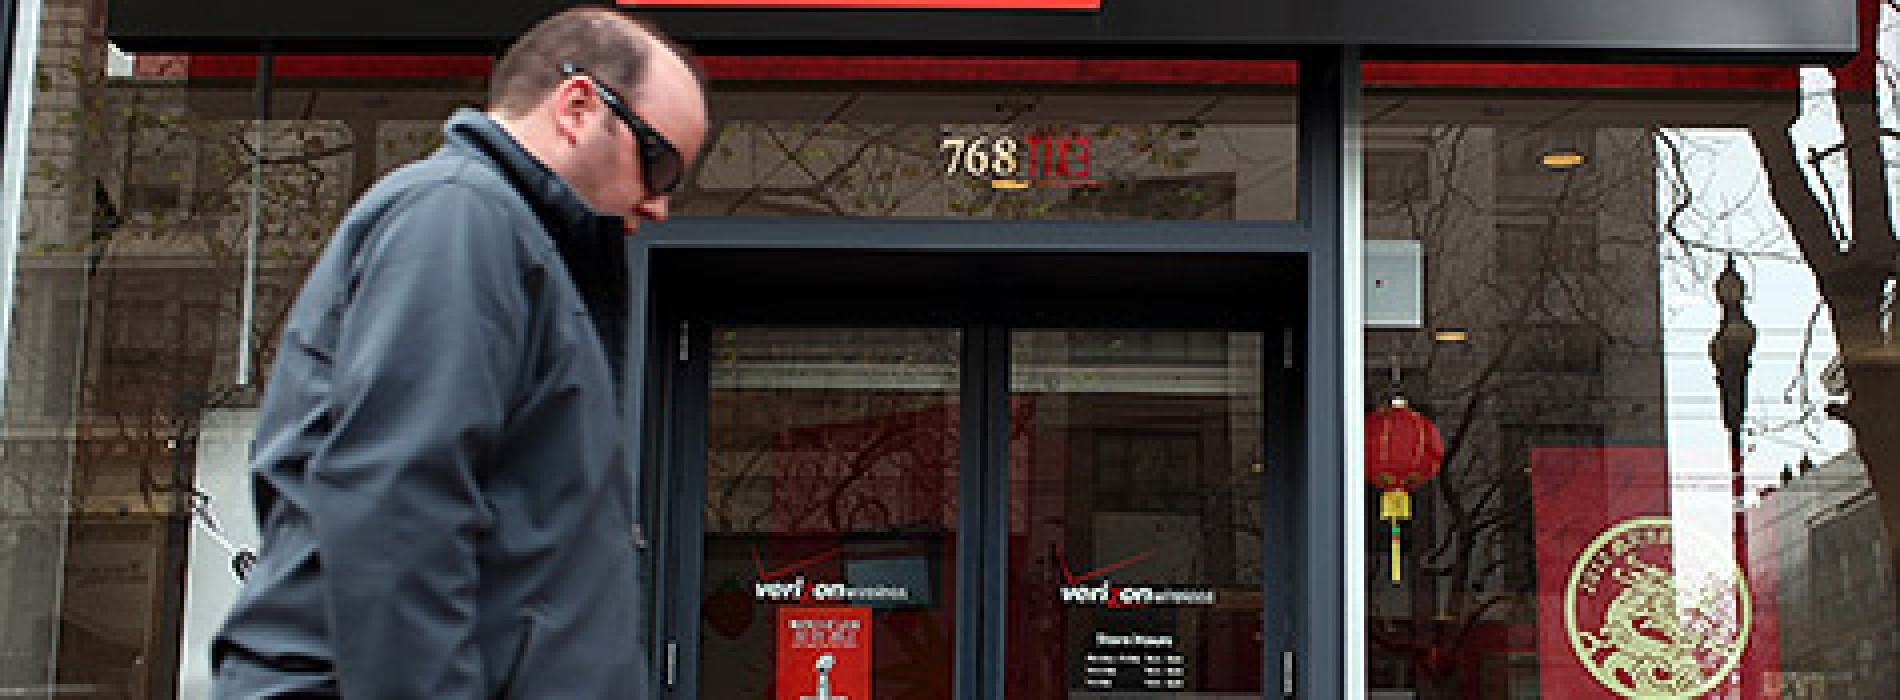 Verizon Q4 and 2012 earnings: great growth all around